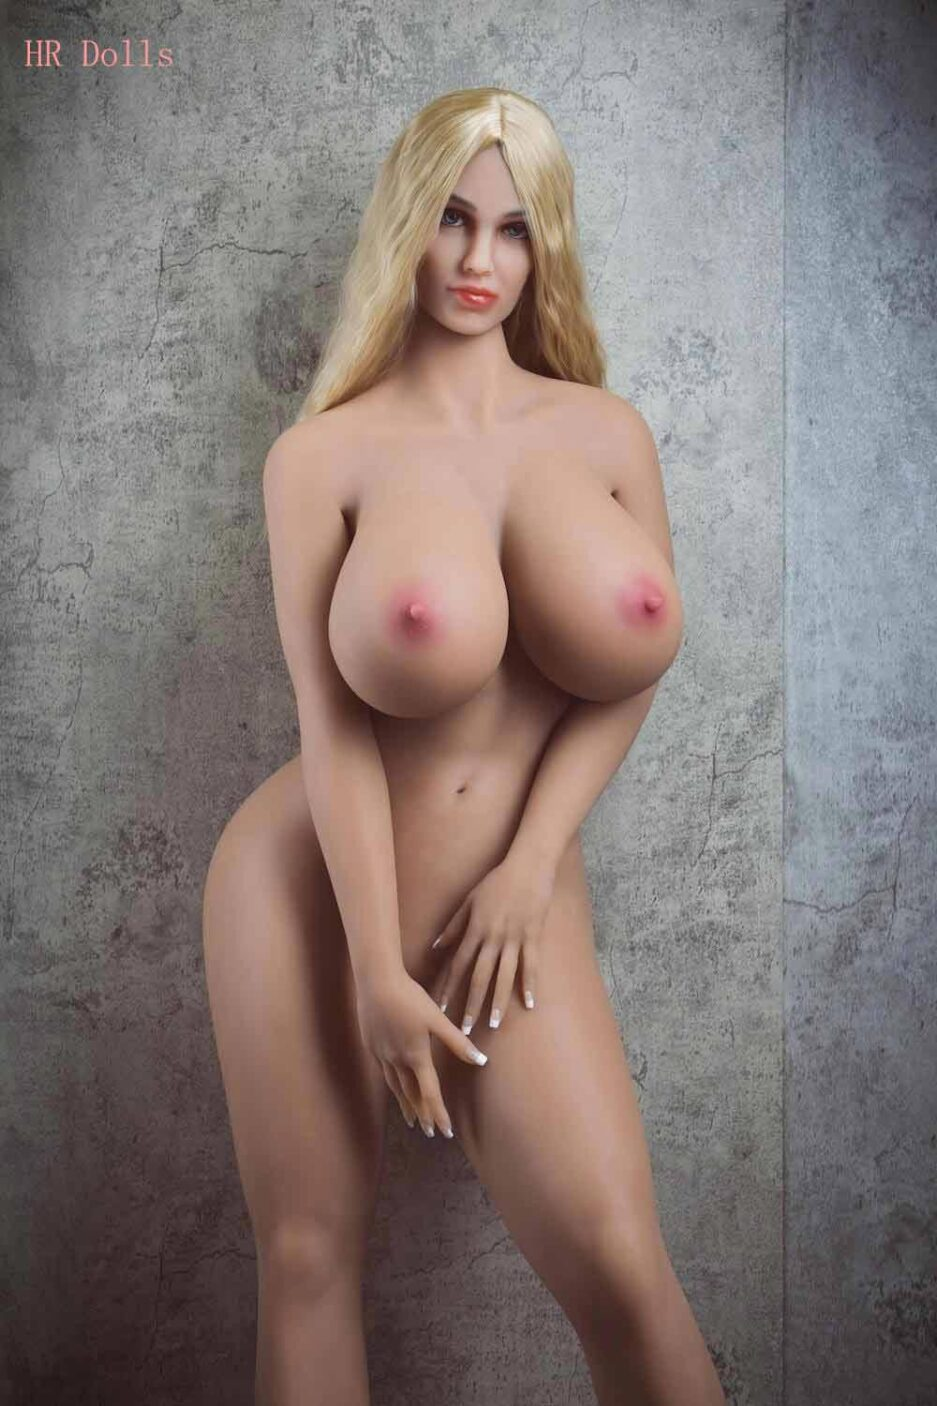 Big breasted sex doll with hands covering the lower body